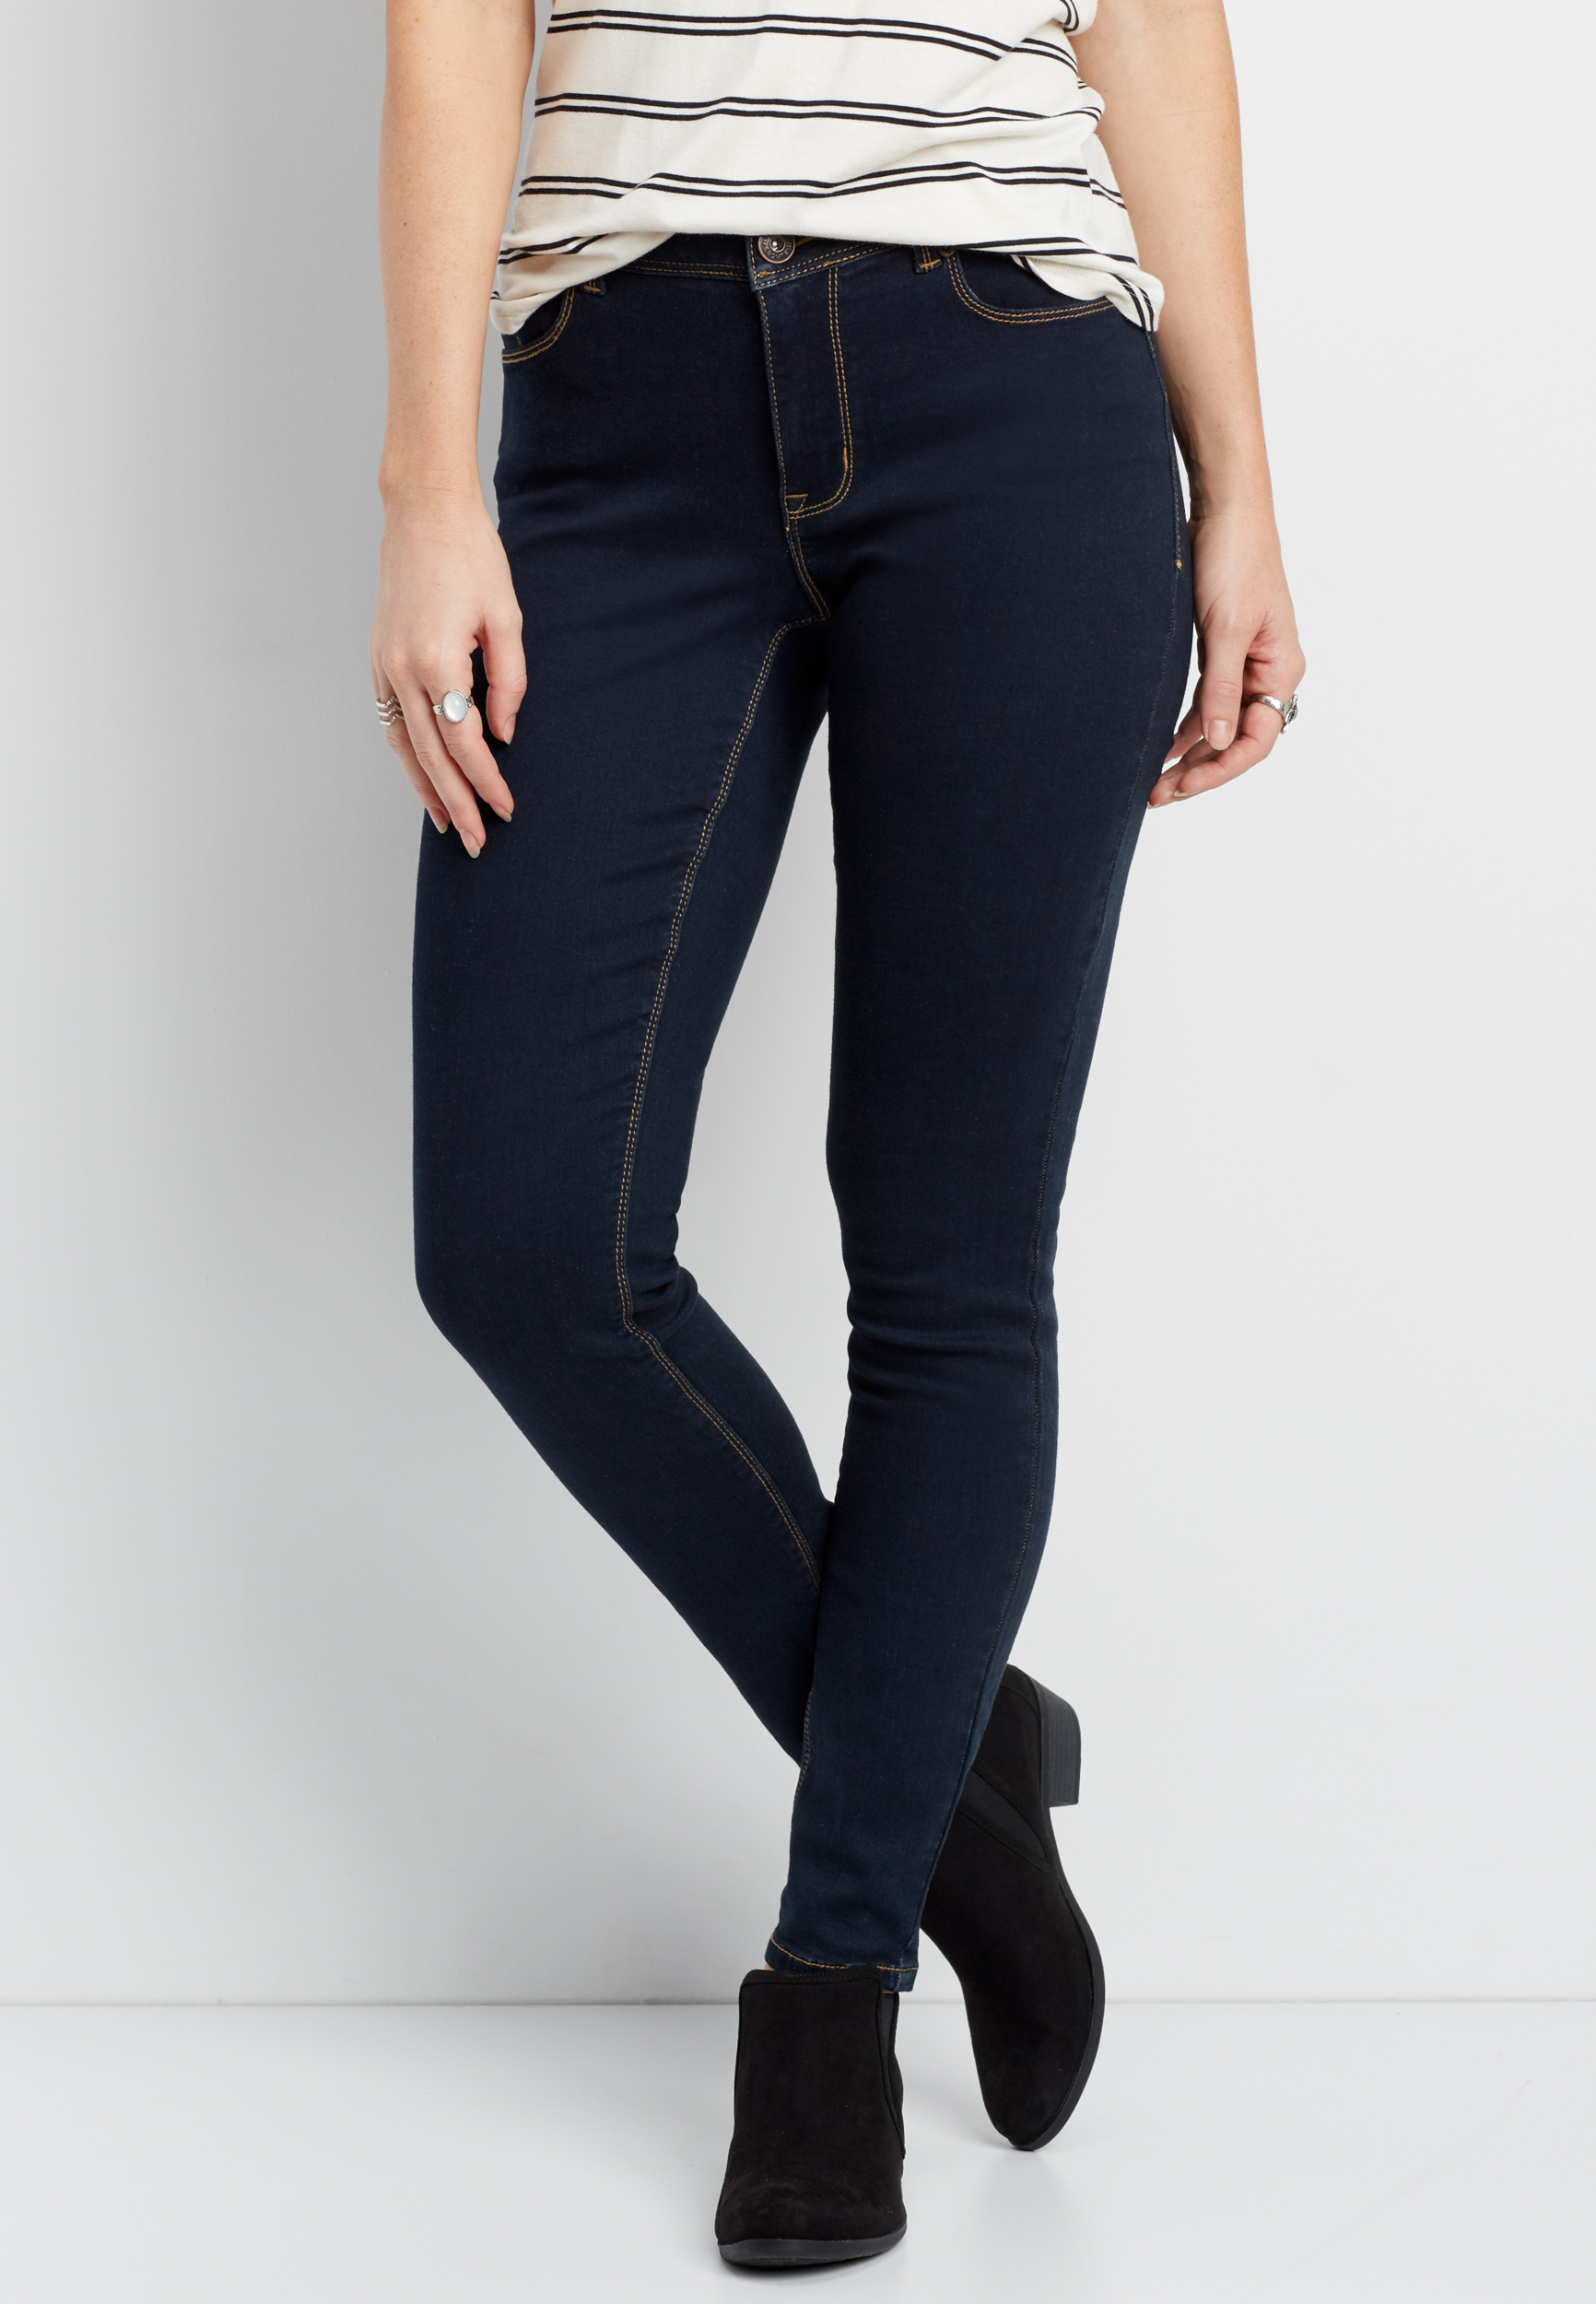 Denimflex Curvy Skinny Jeans In Black Maurices